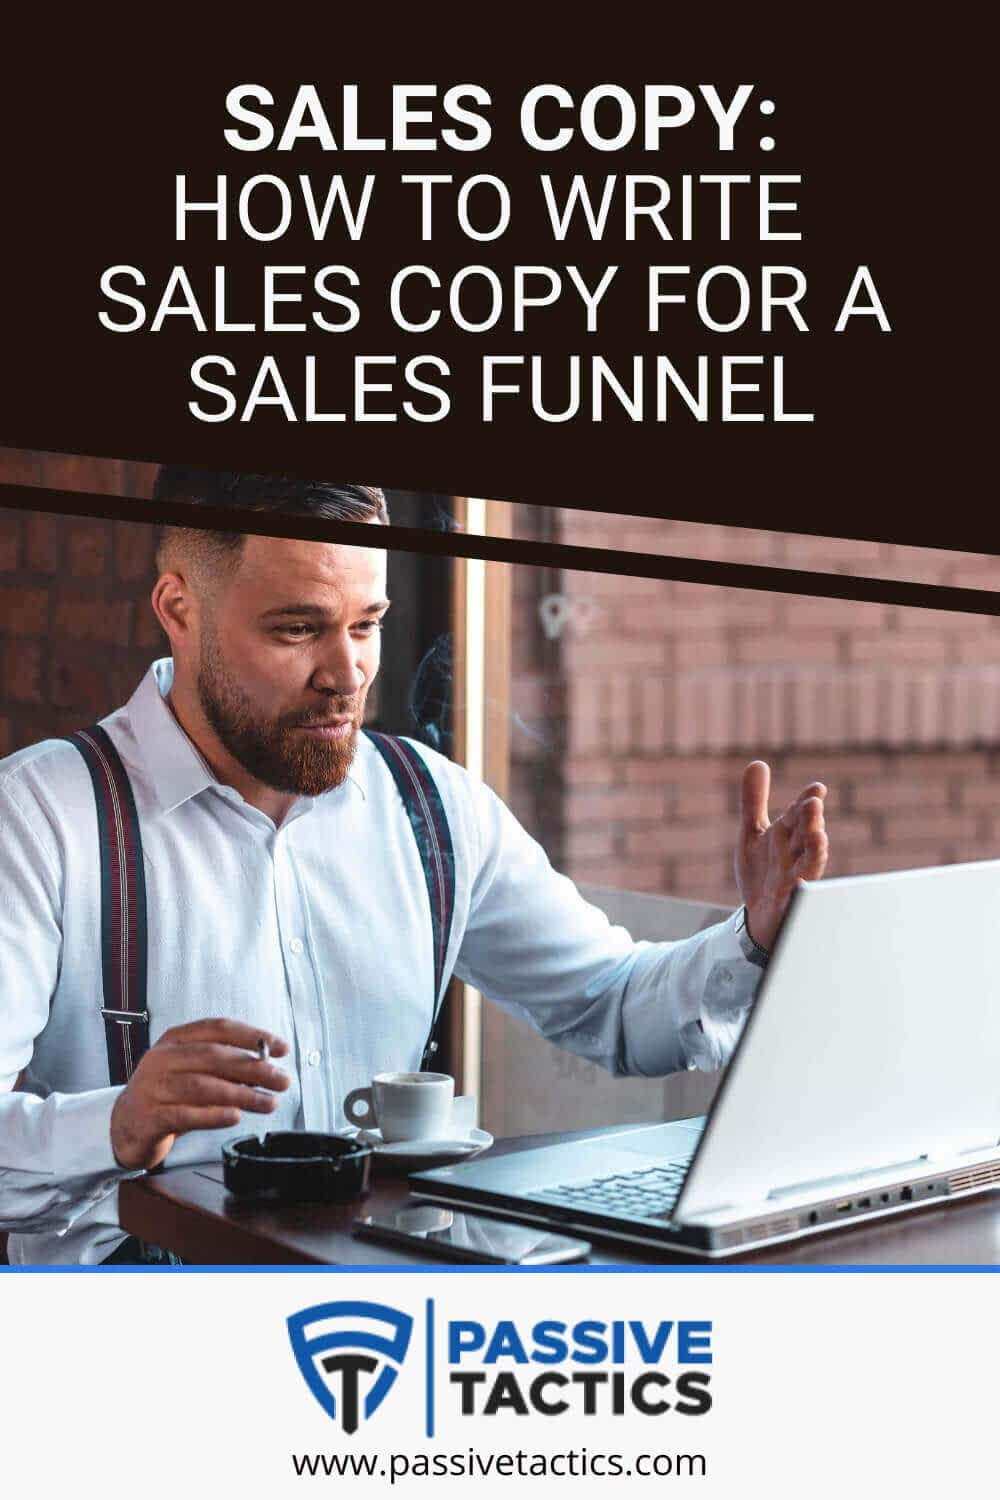 Sales Copy: How To Write Sales Copy For A Sales Funnel